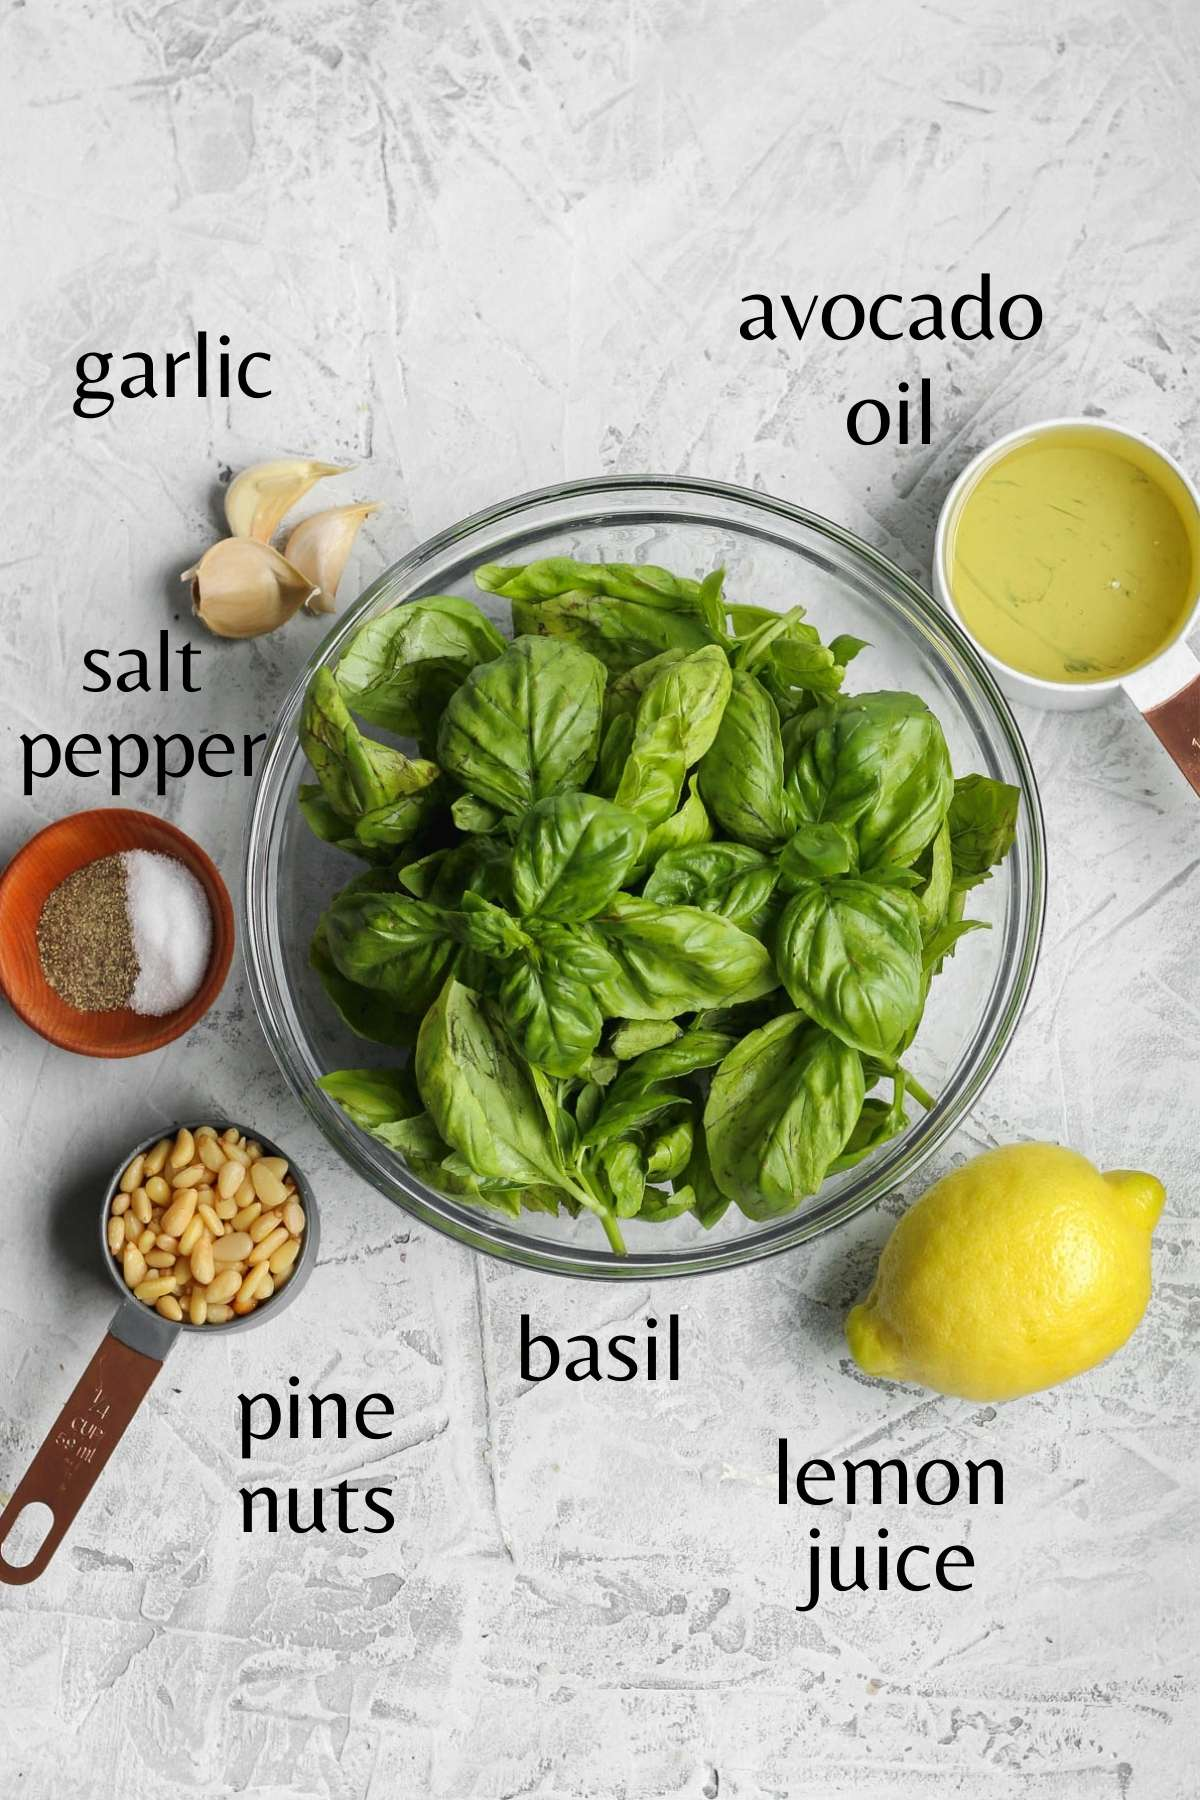 Fresh basil in a glass bowl with avocado oil in a measuring cup, garlic cloves, a lemon, pine nuts in a measuring cup, and salt and pepper in a small bowl sitting next to it